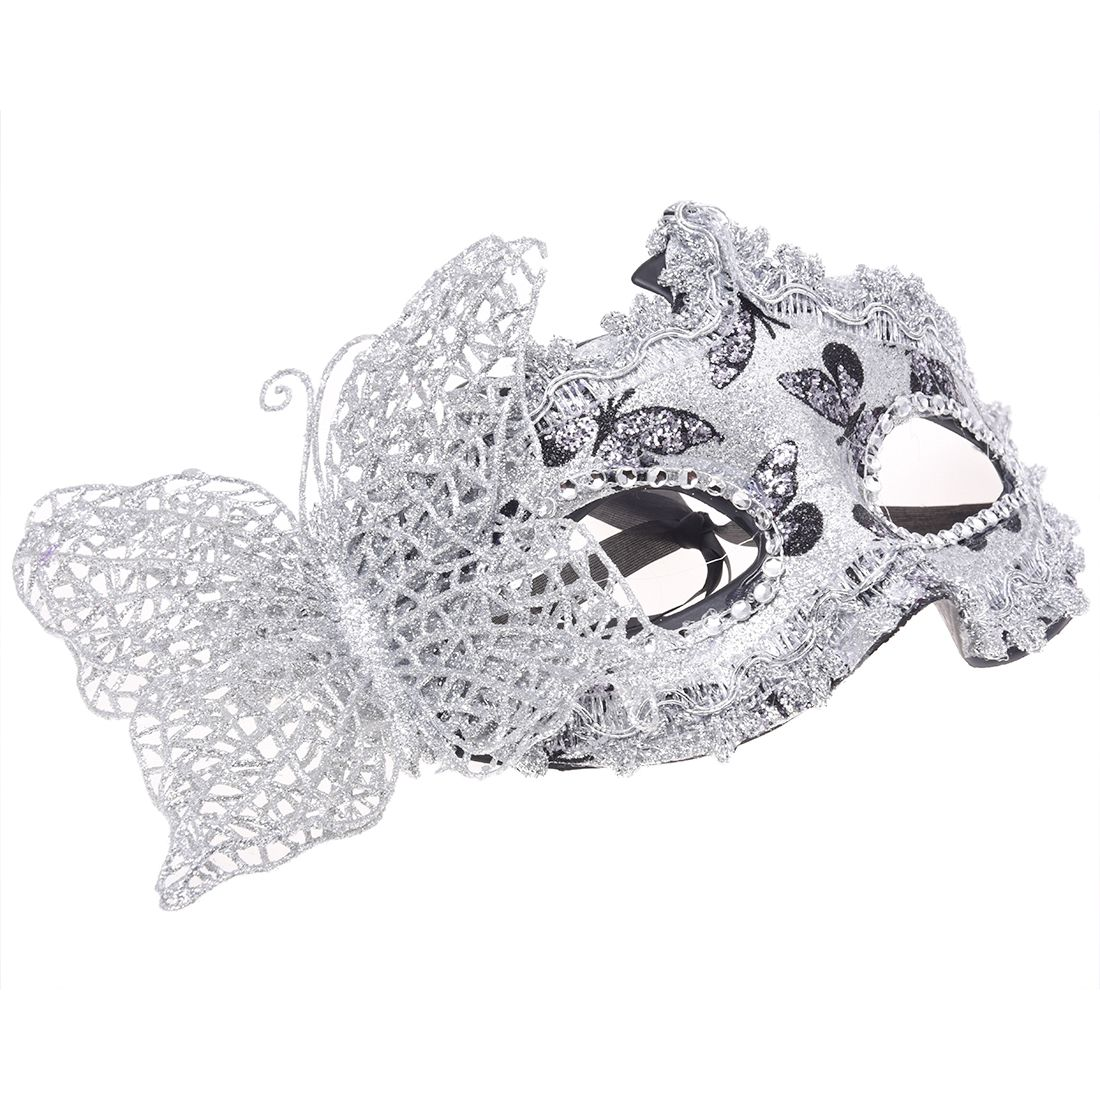 Compare Prices on Venice Masks Carnival- Online Shopping/Buy Low ...